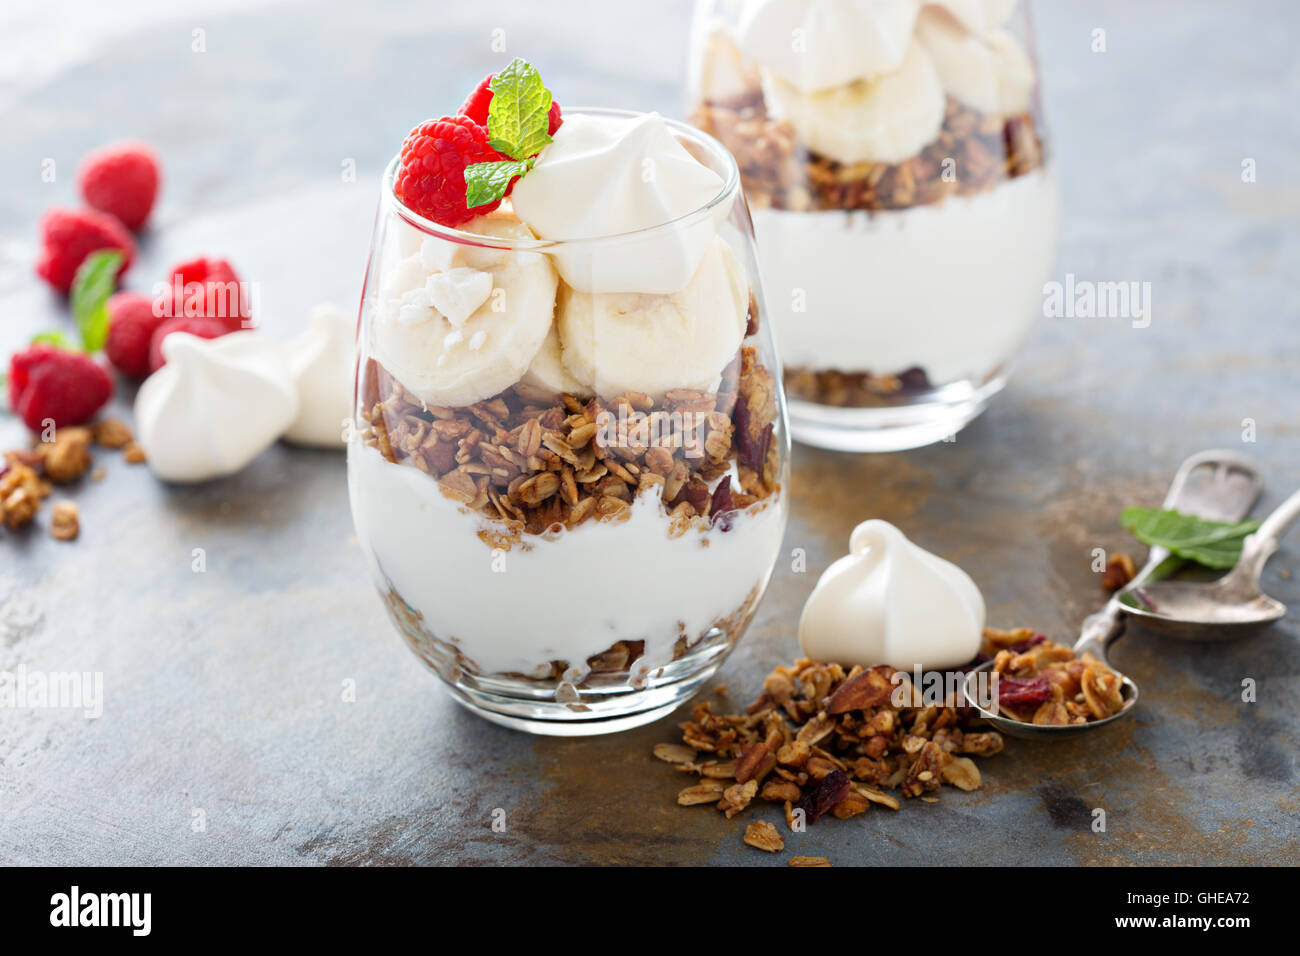 Banana and granola breakfast parfait - Stock Image